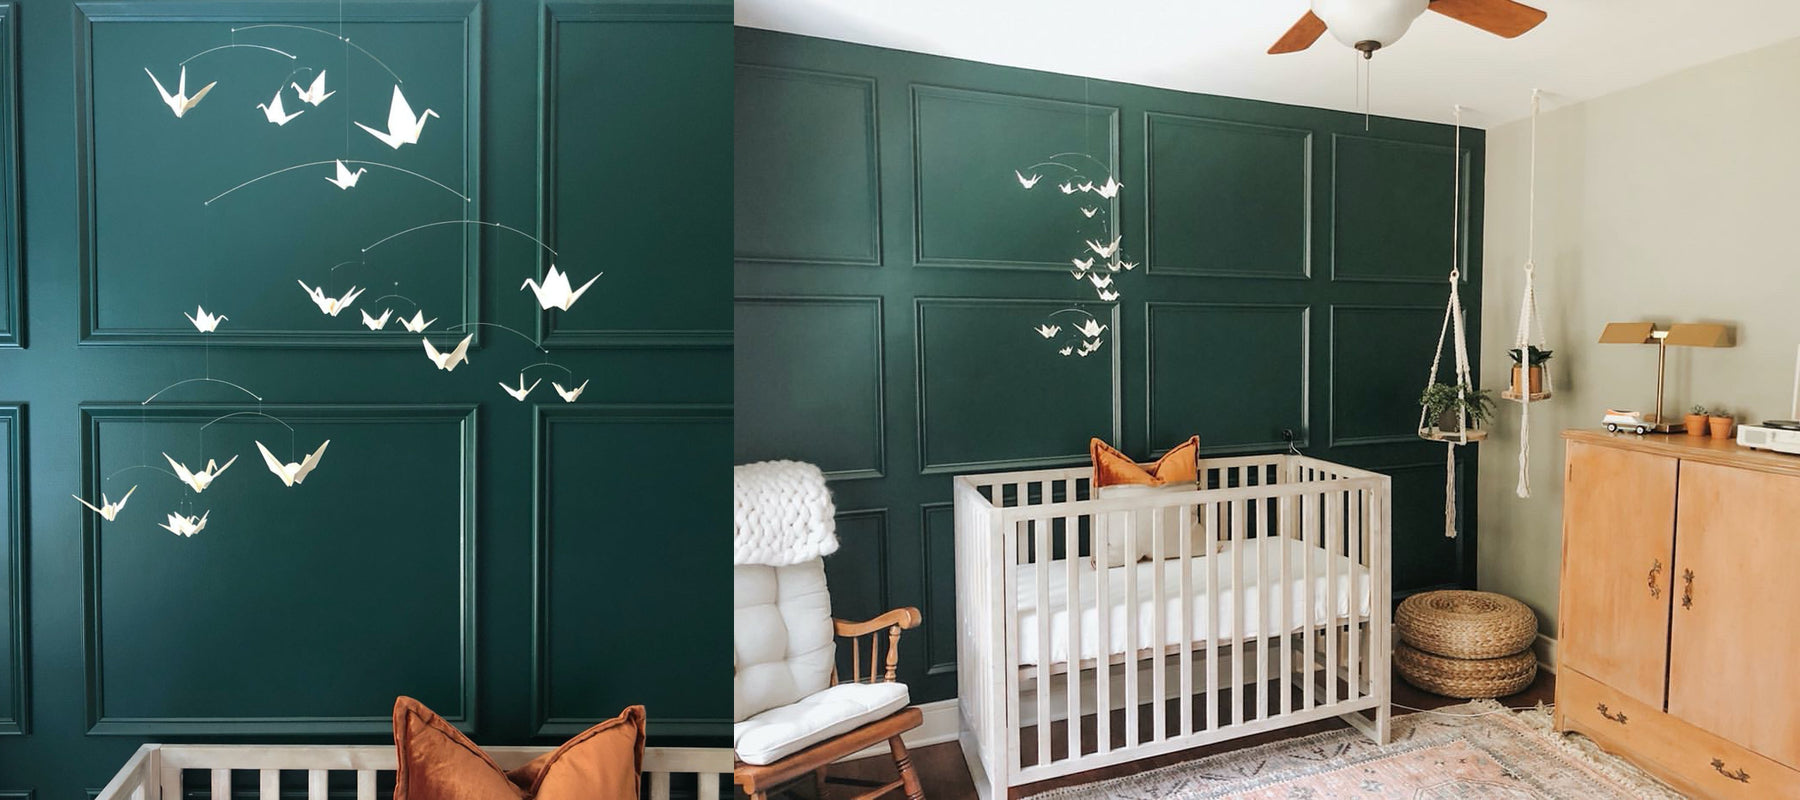 An all White Origami Paper Crane Mobile hangs above a white crib against a deep green nursery wall.